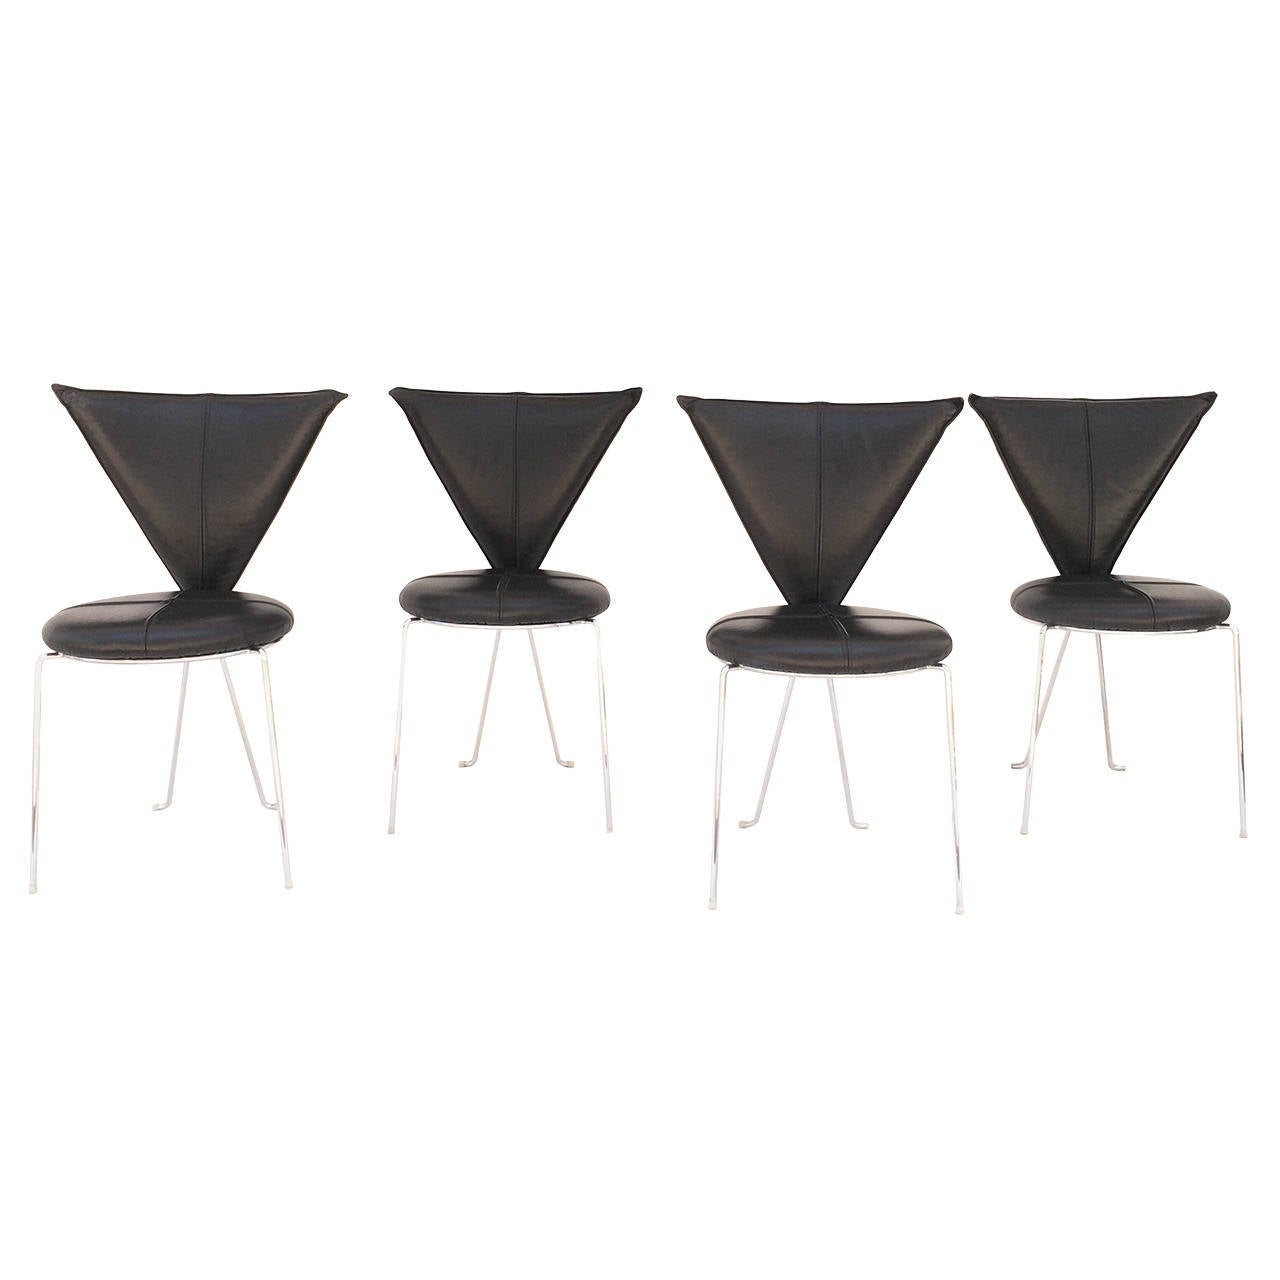 Rare Set of Four Black Leather and Chrome Chairs by Helmut Lubke & Co For Sale